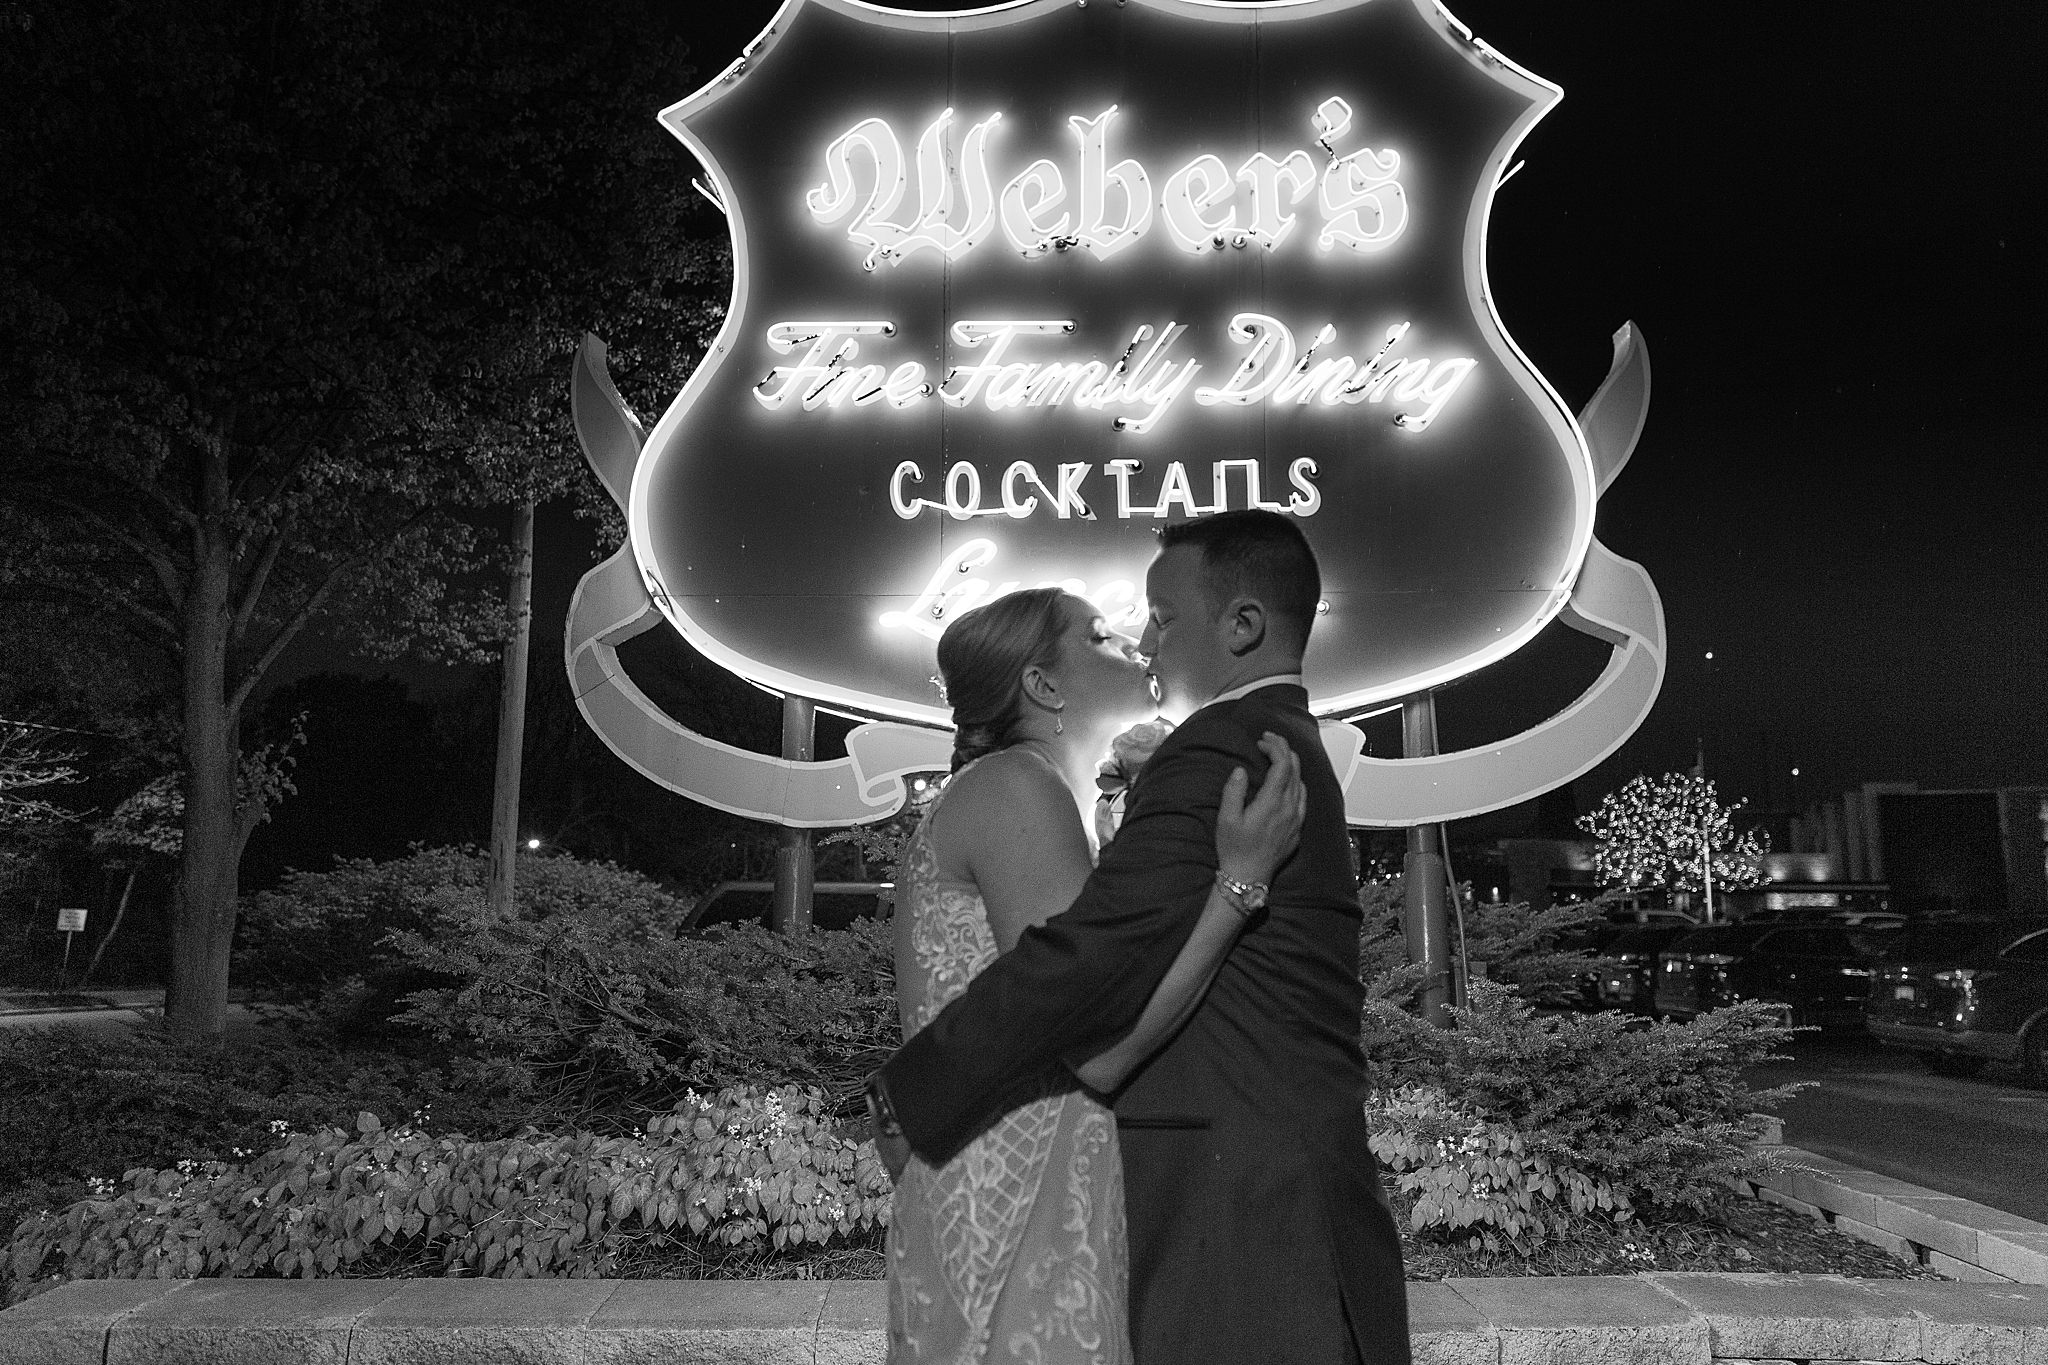 modern-romantic-wedding-photography-at-webers-in-ann-arbor-michigan-by-courtney-carolyn-photography_0086.jpg